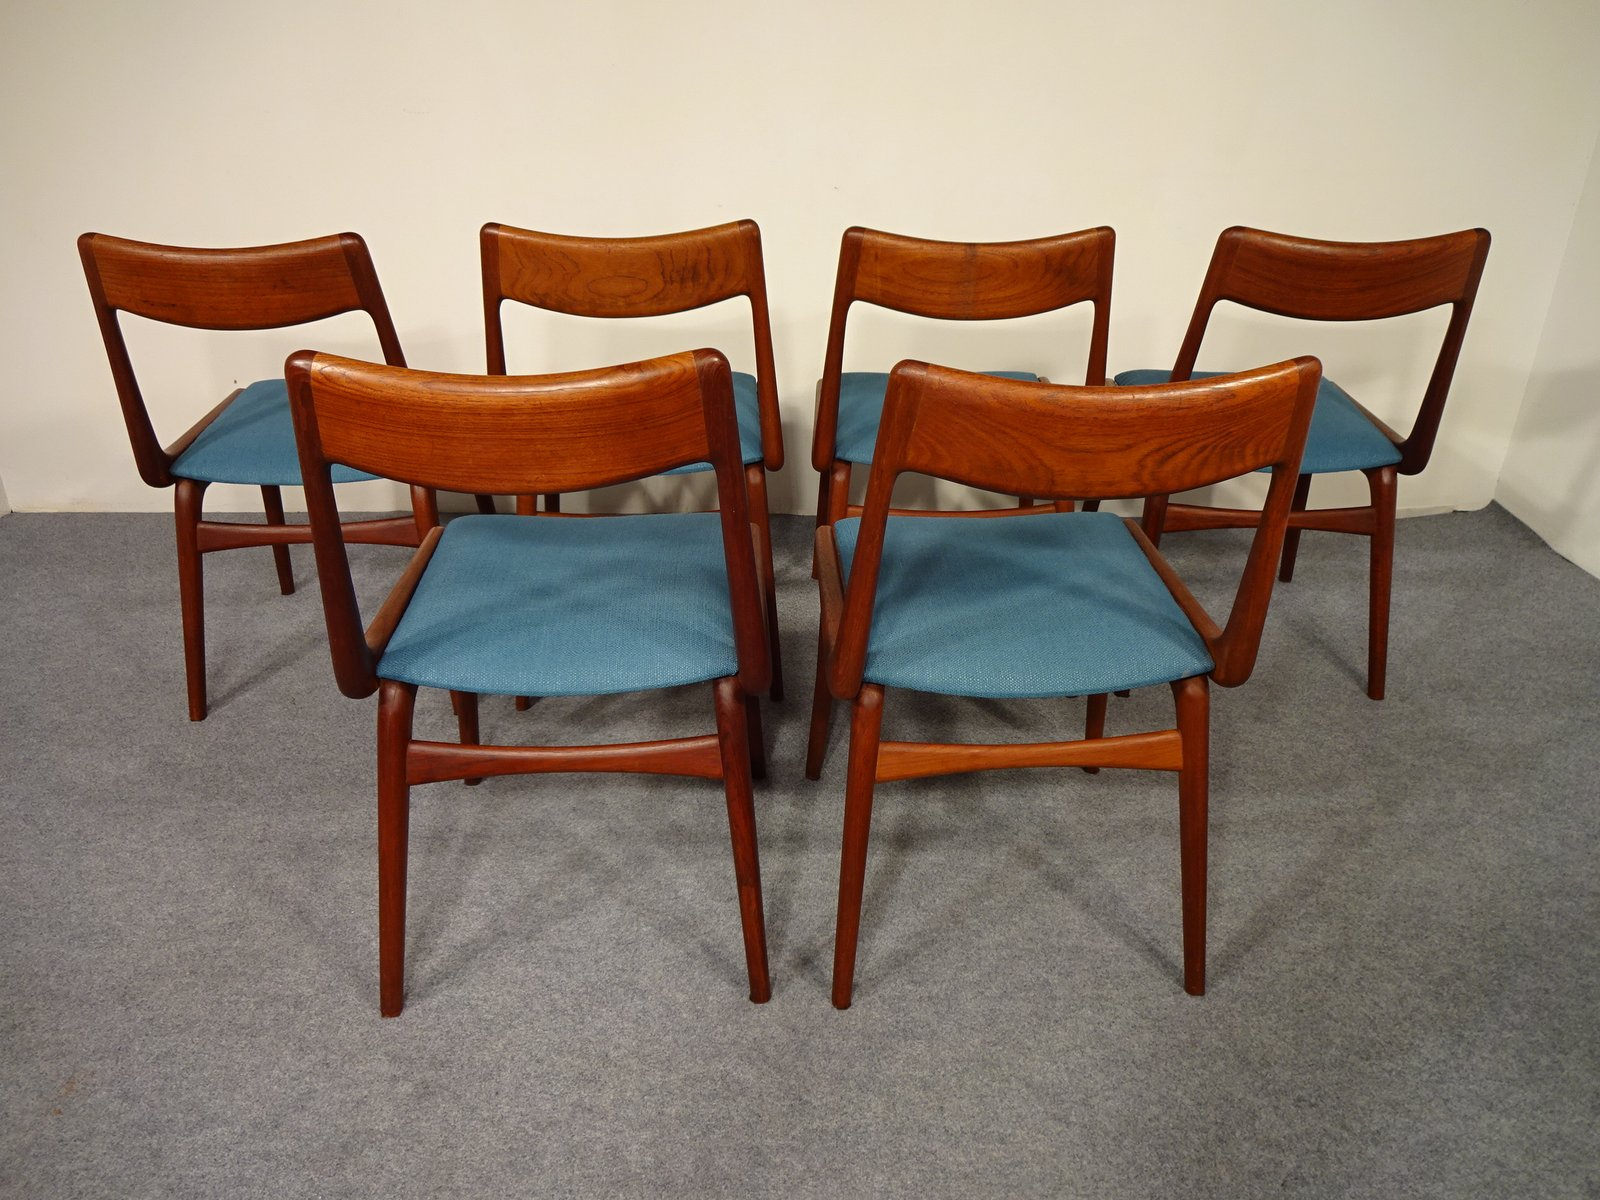 Vintage Boomerang Dining Chairs by Alfred Christensen for